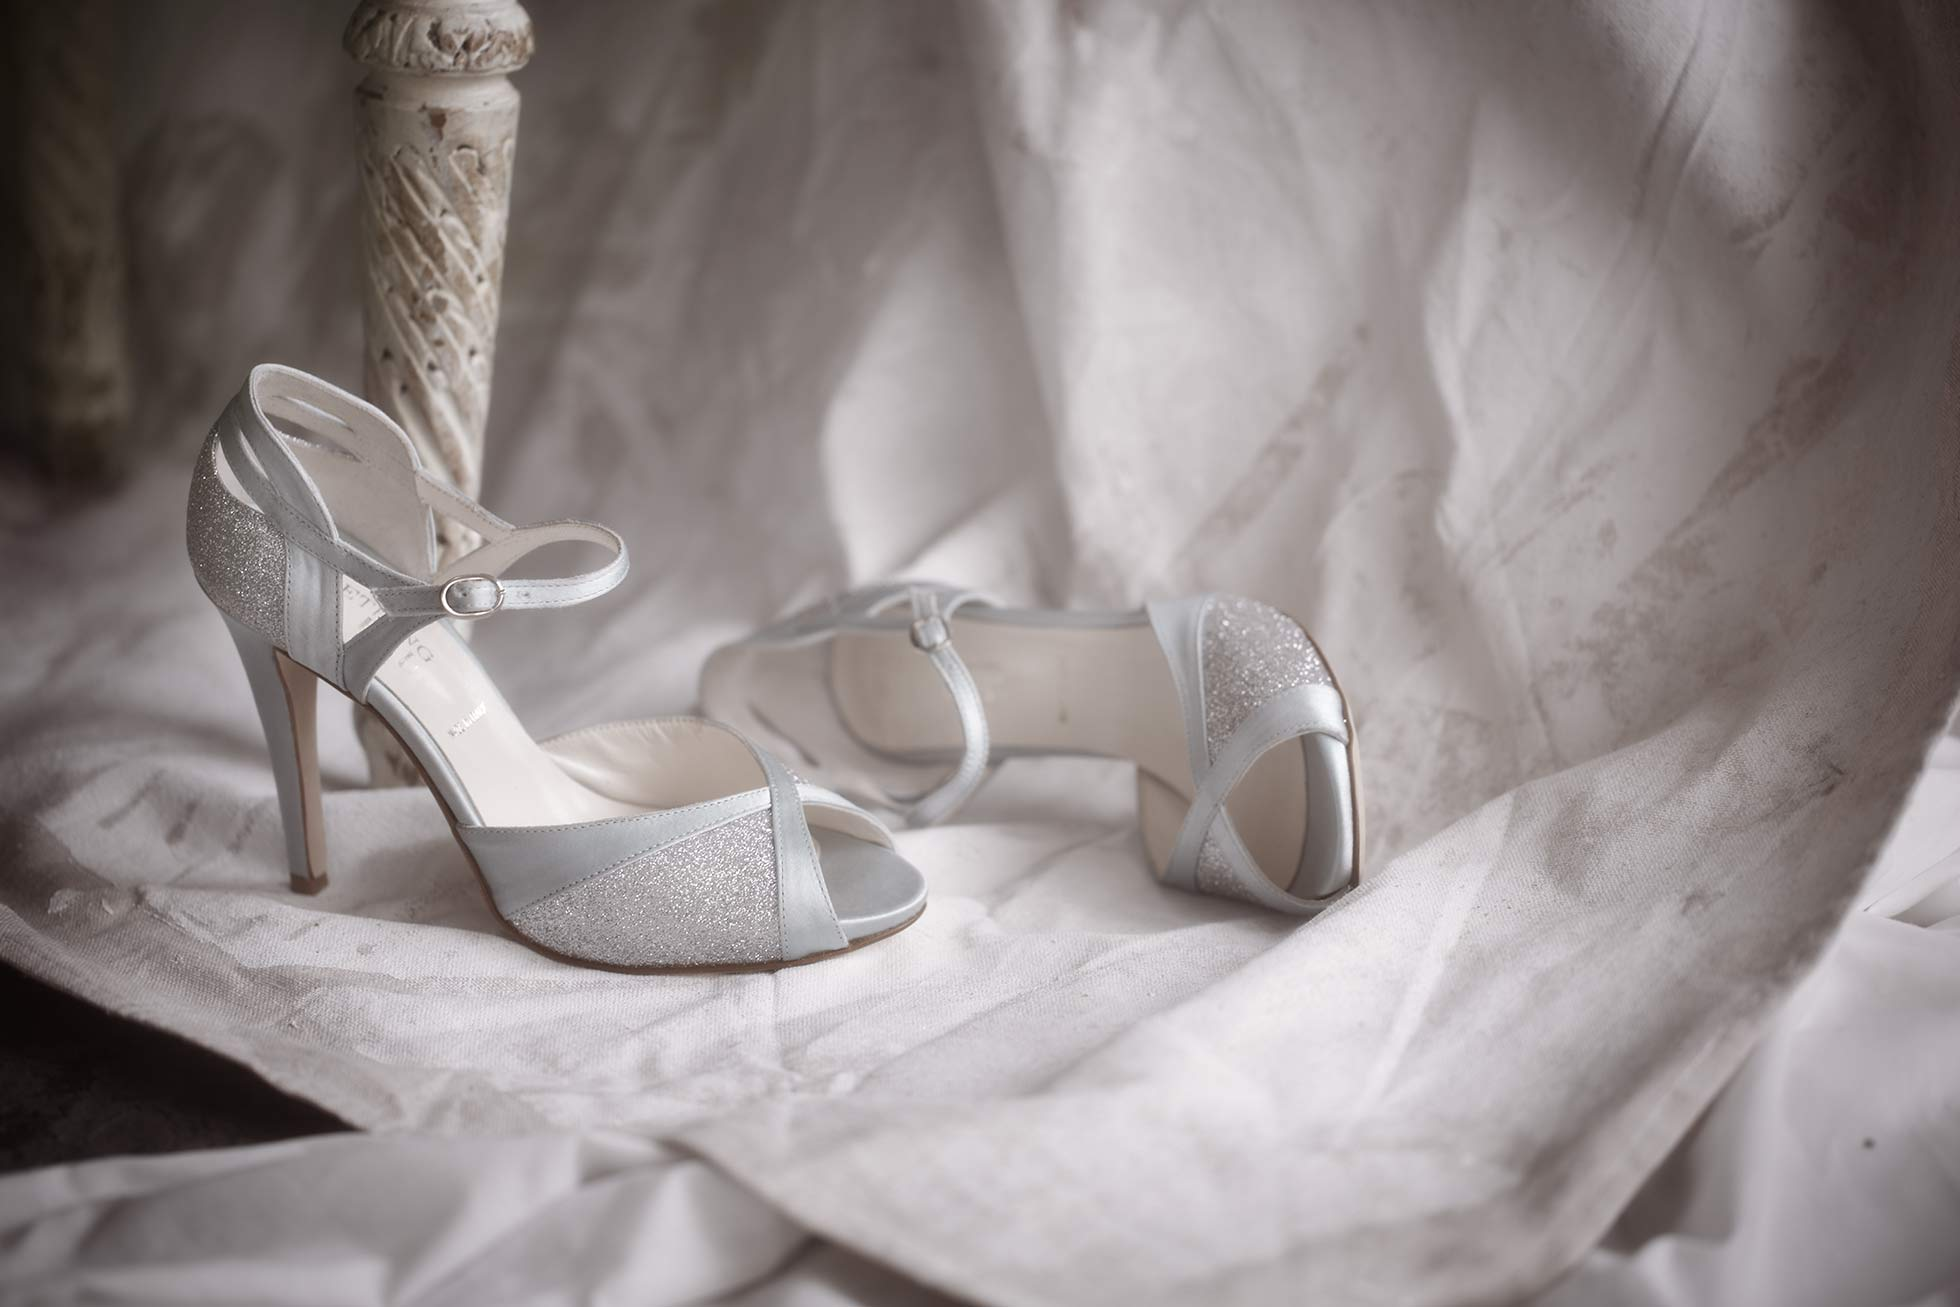 Bridal shoes photograph  on canvas background